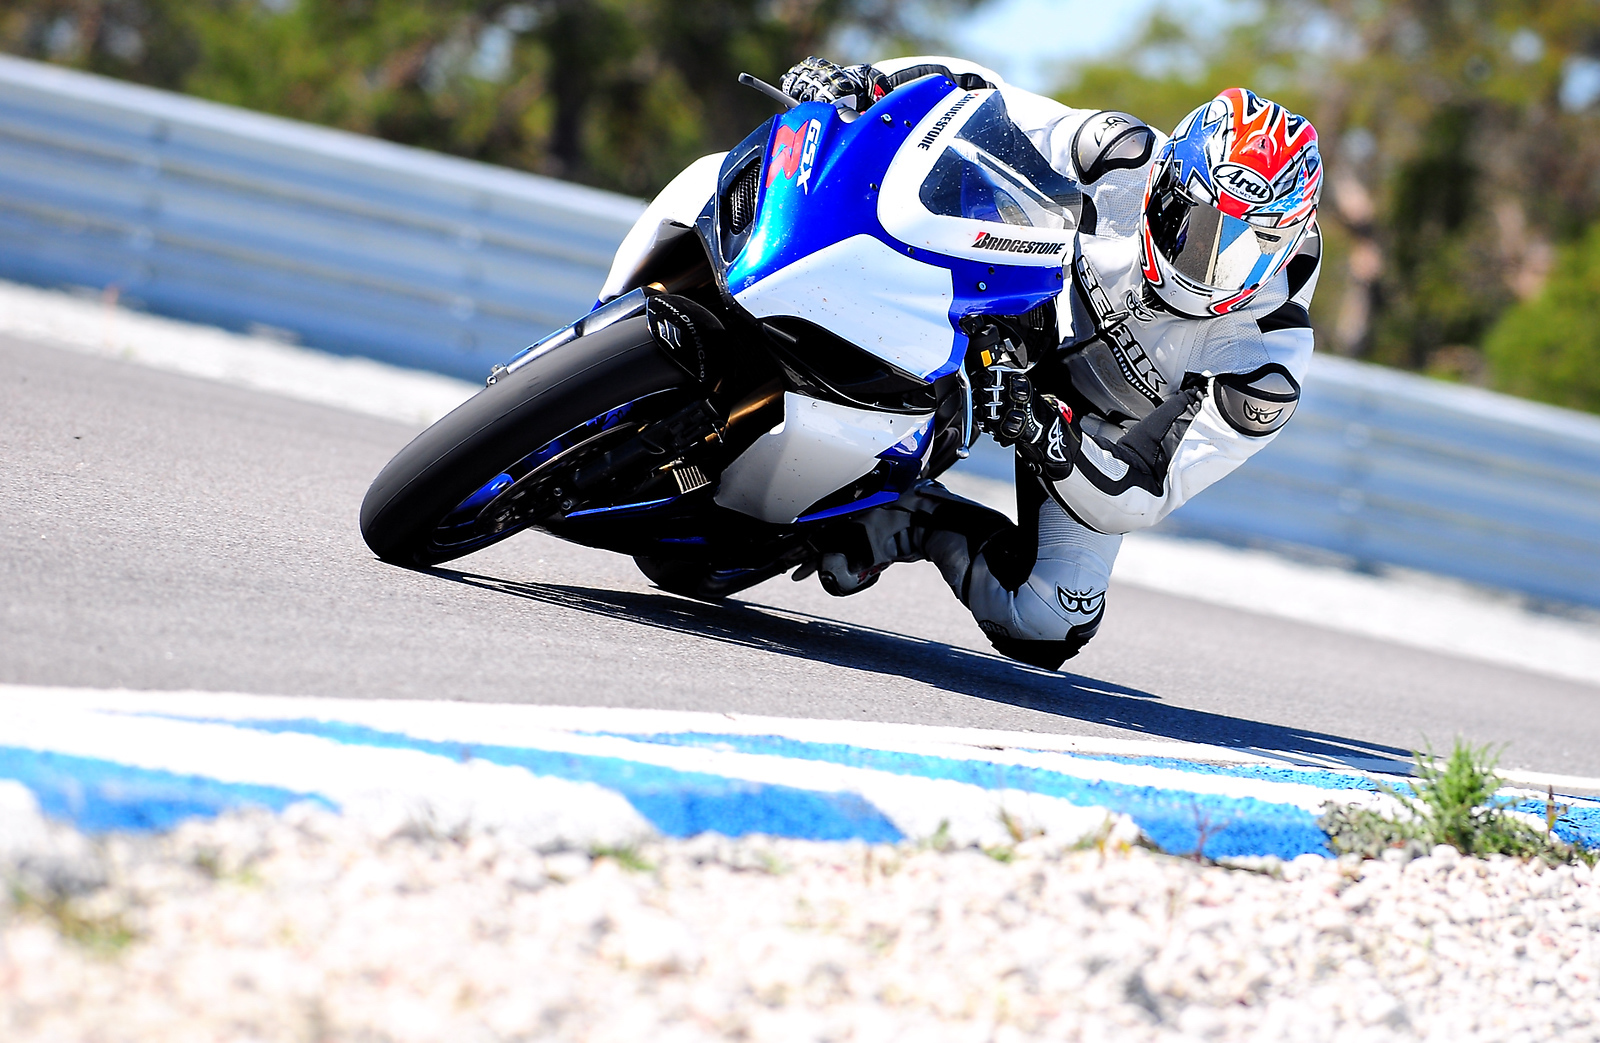 Marcus riding his GSXR600, Gotland Ring 2008